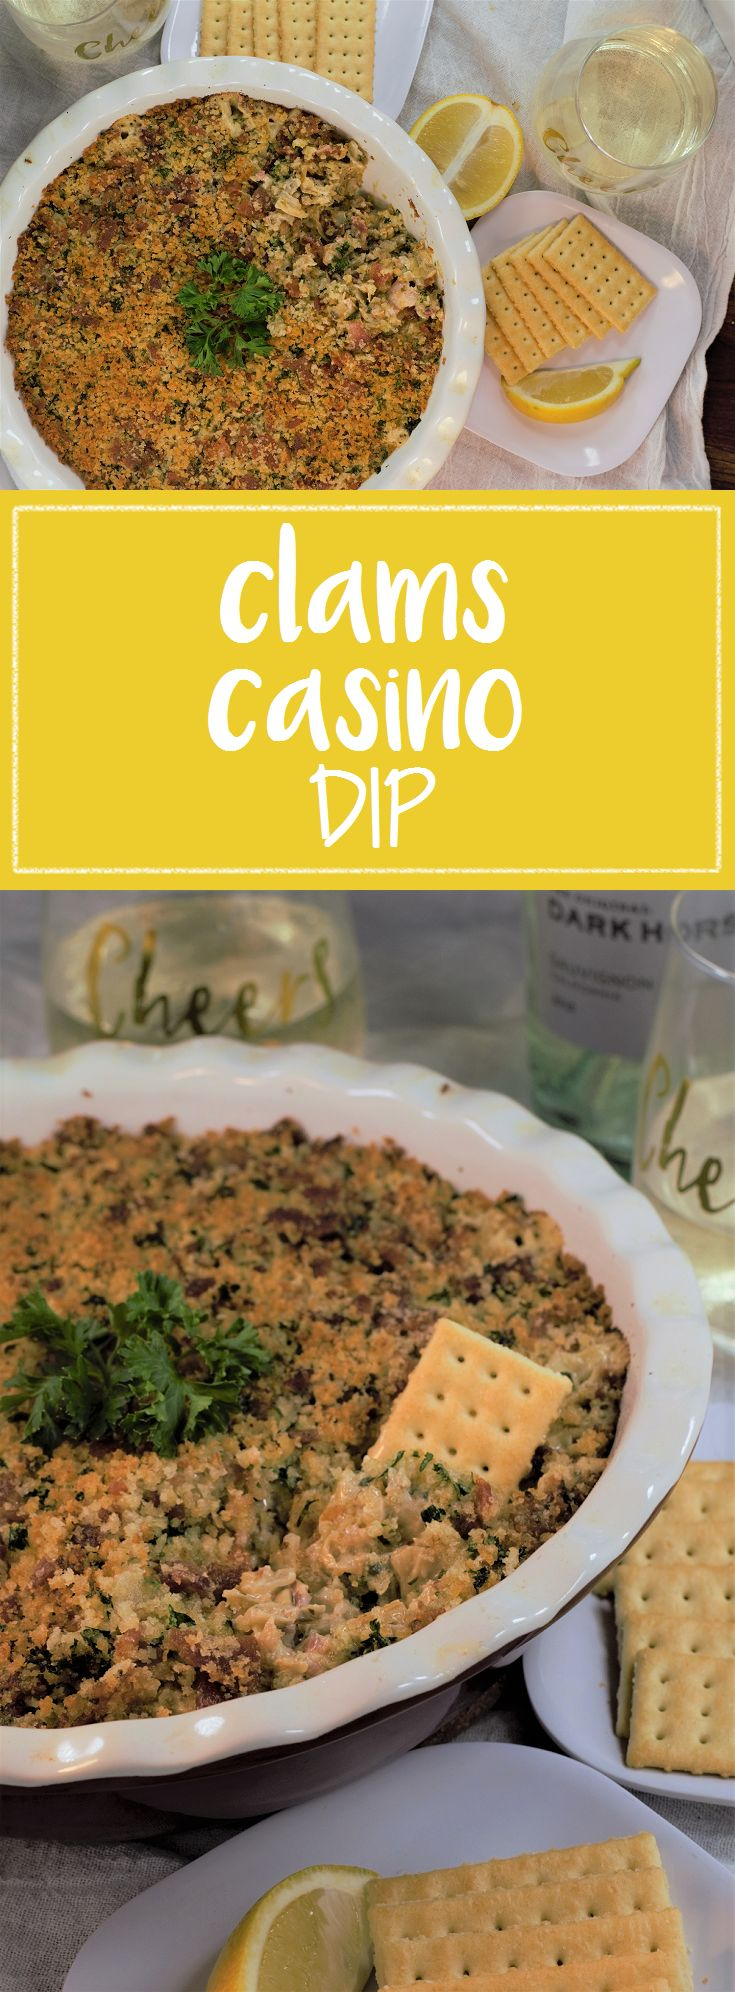 All the elements of the traditional open-faced version, baked into a savory dip at a fraction of the price.